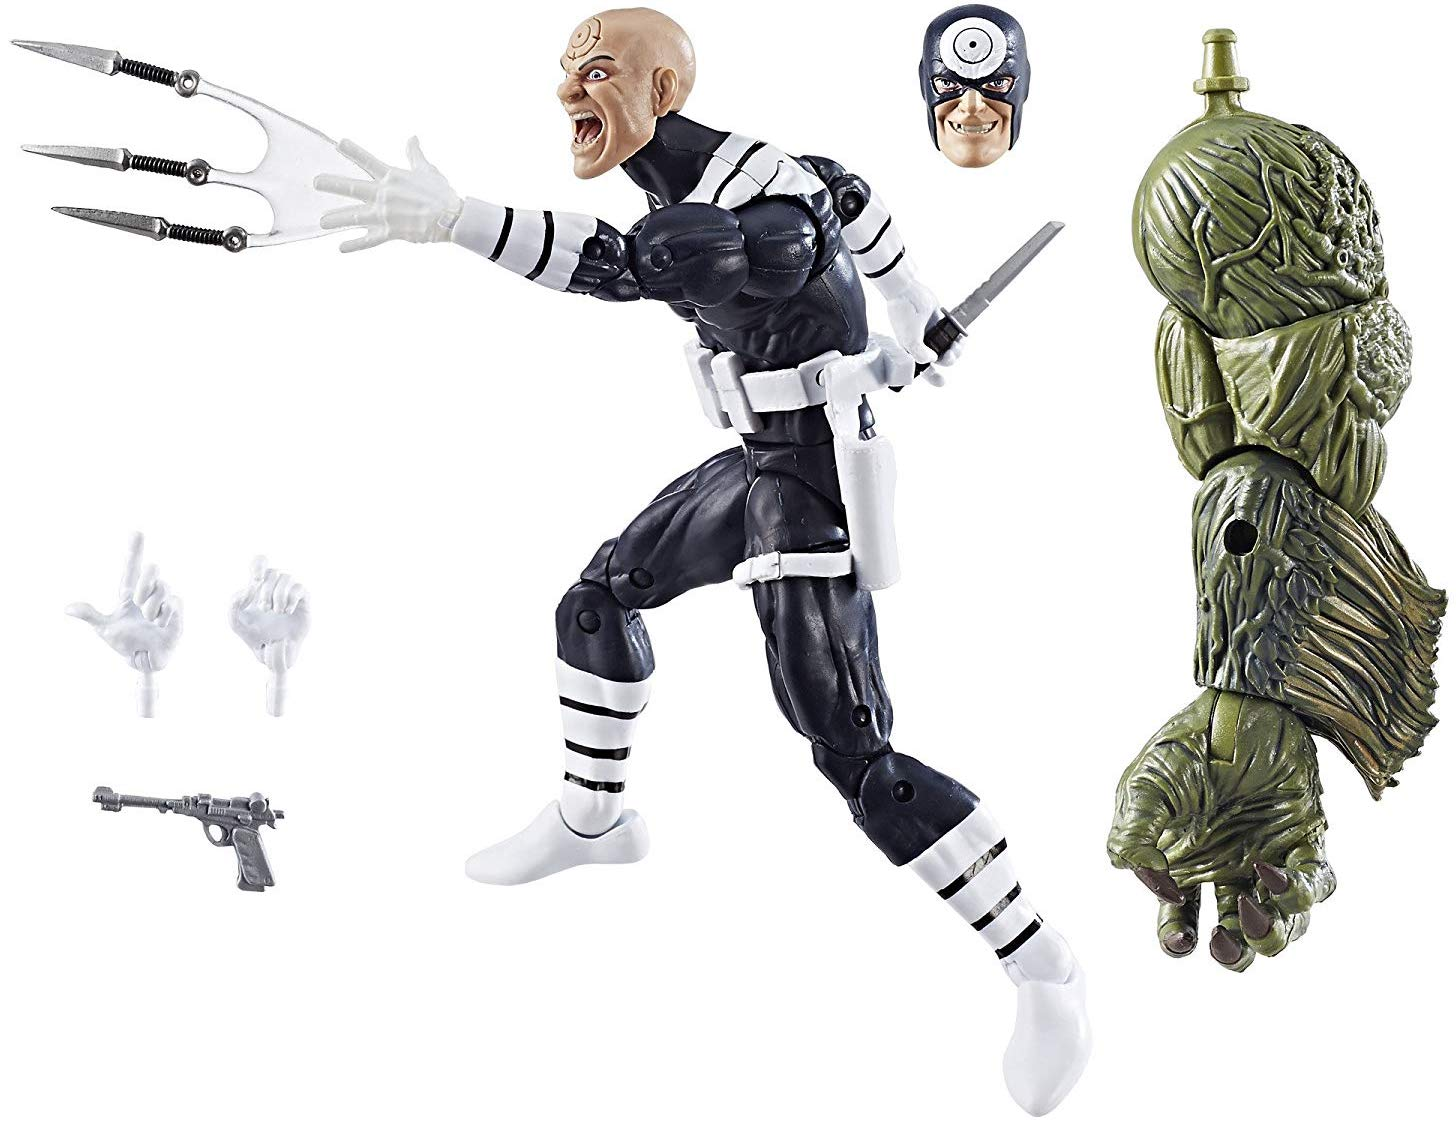 Marvel Legends Man-Thing Series Bullseye Stock